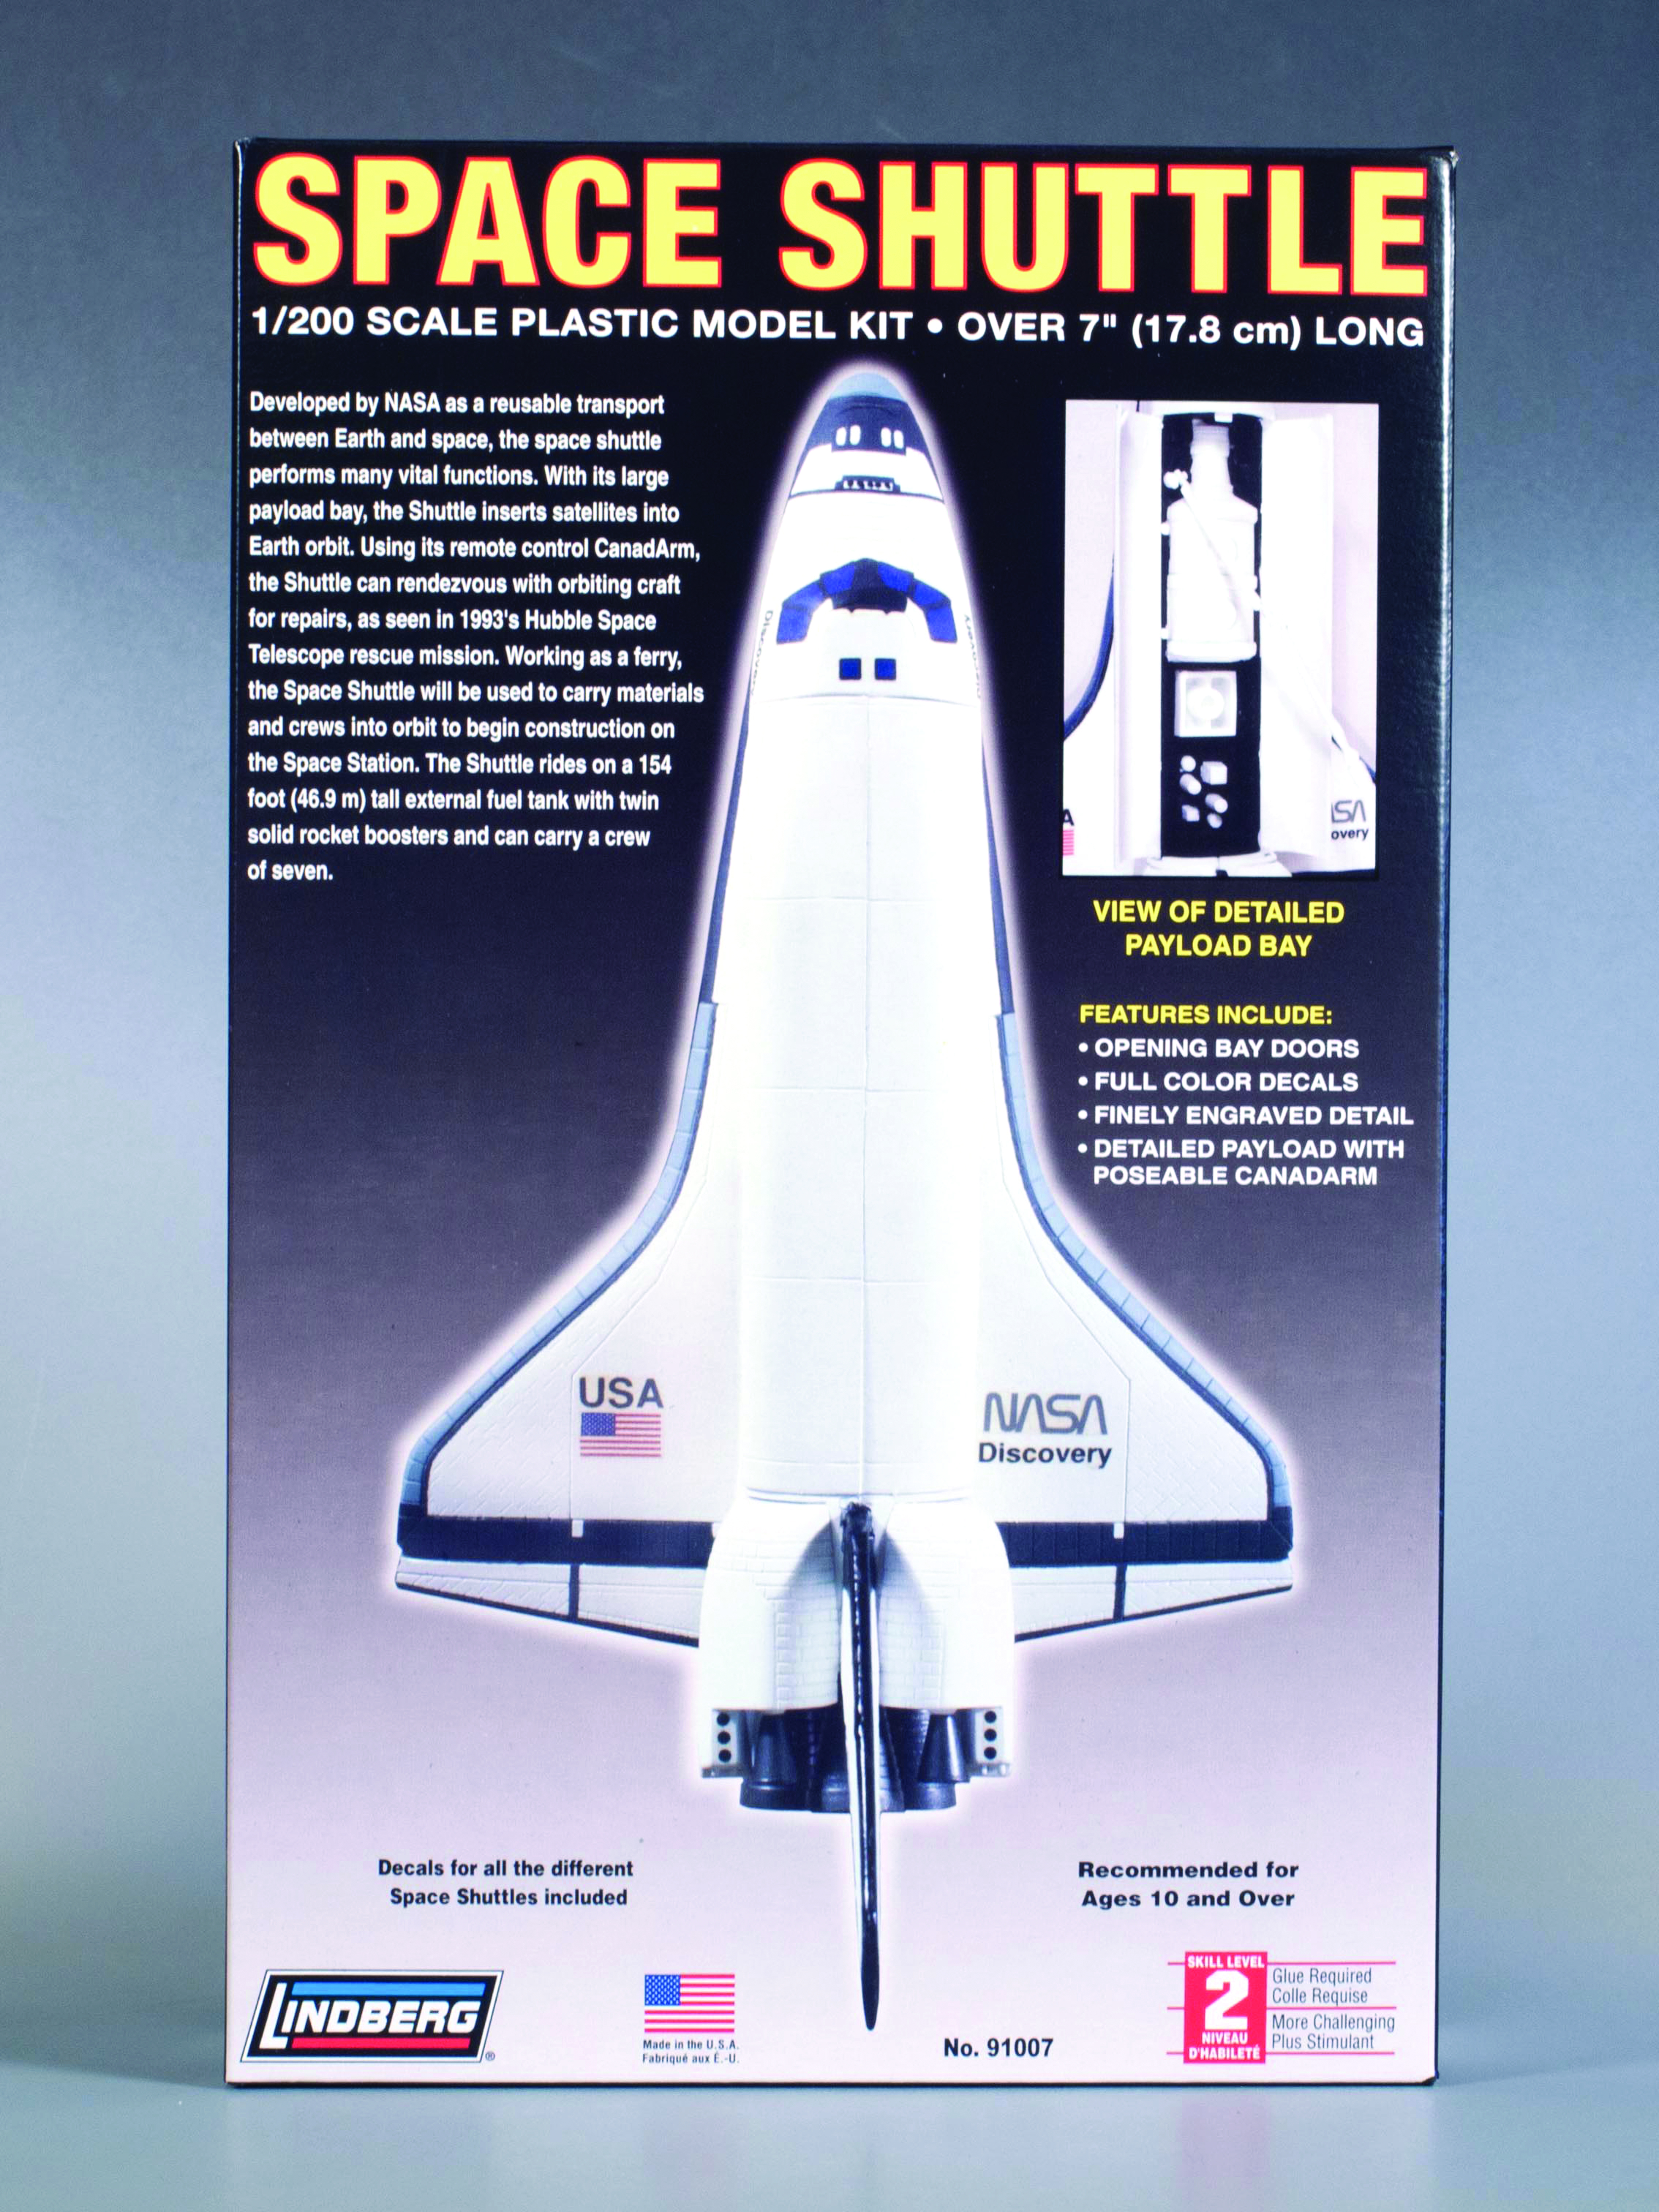 LINDBERG SPACE SHUTTLE 1/200 SCALE MODEL KIT